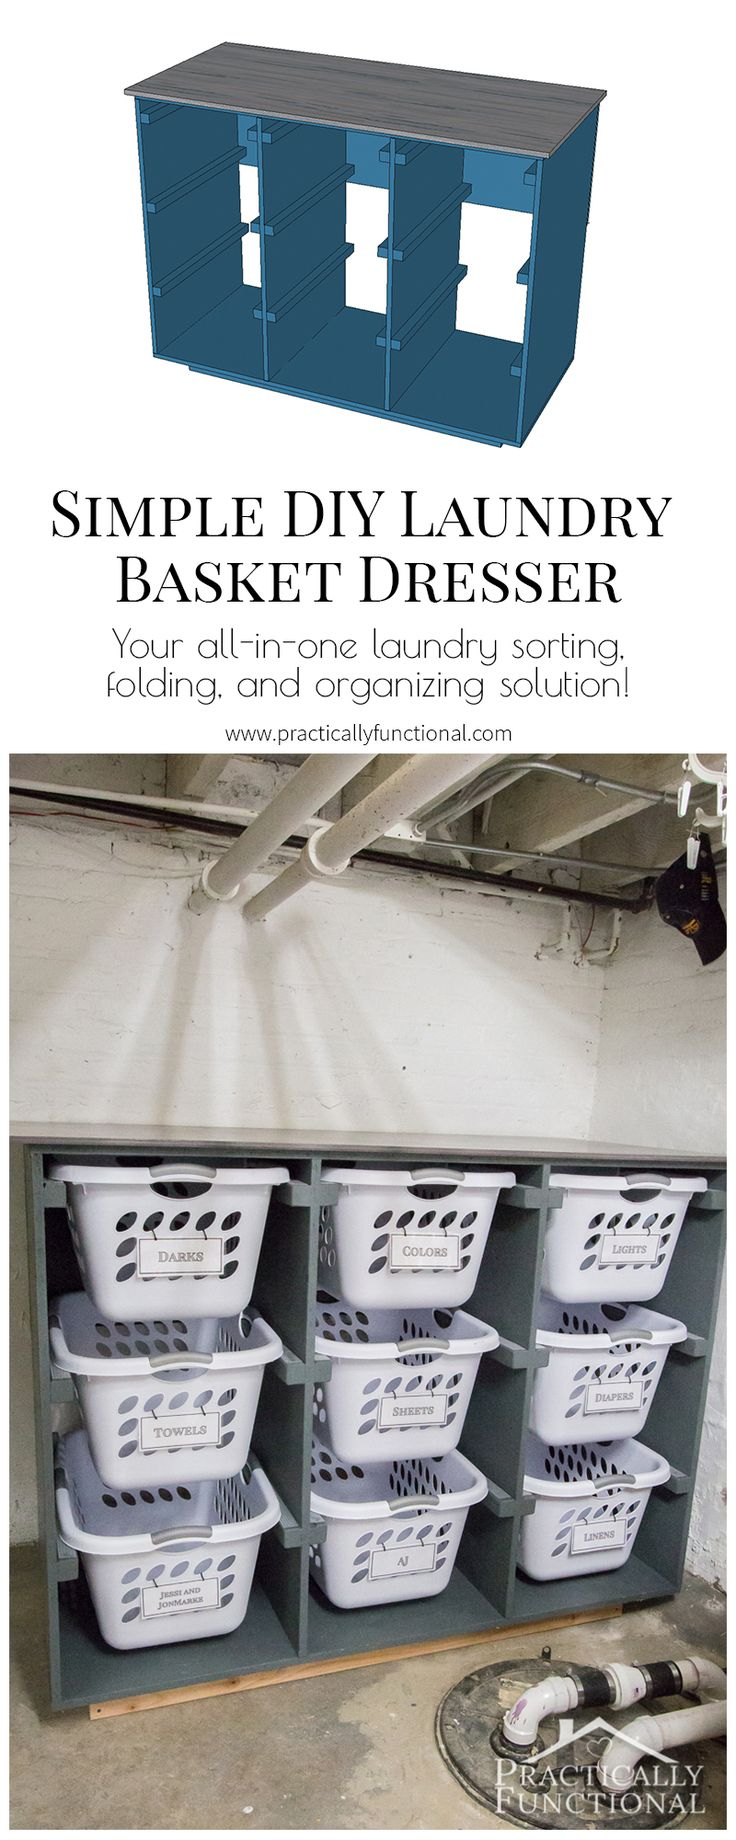 best  folding laundry basket ideas on pinterest  collapsible  - great idea to get your laundry room organized make a simple laundry basketdresser to